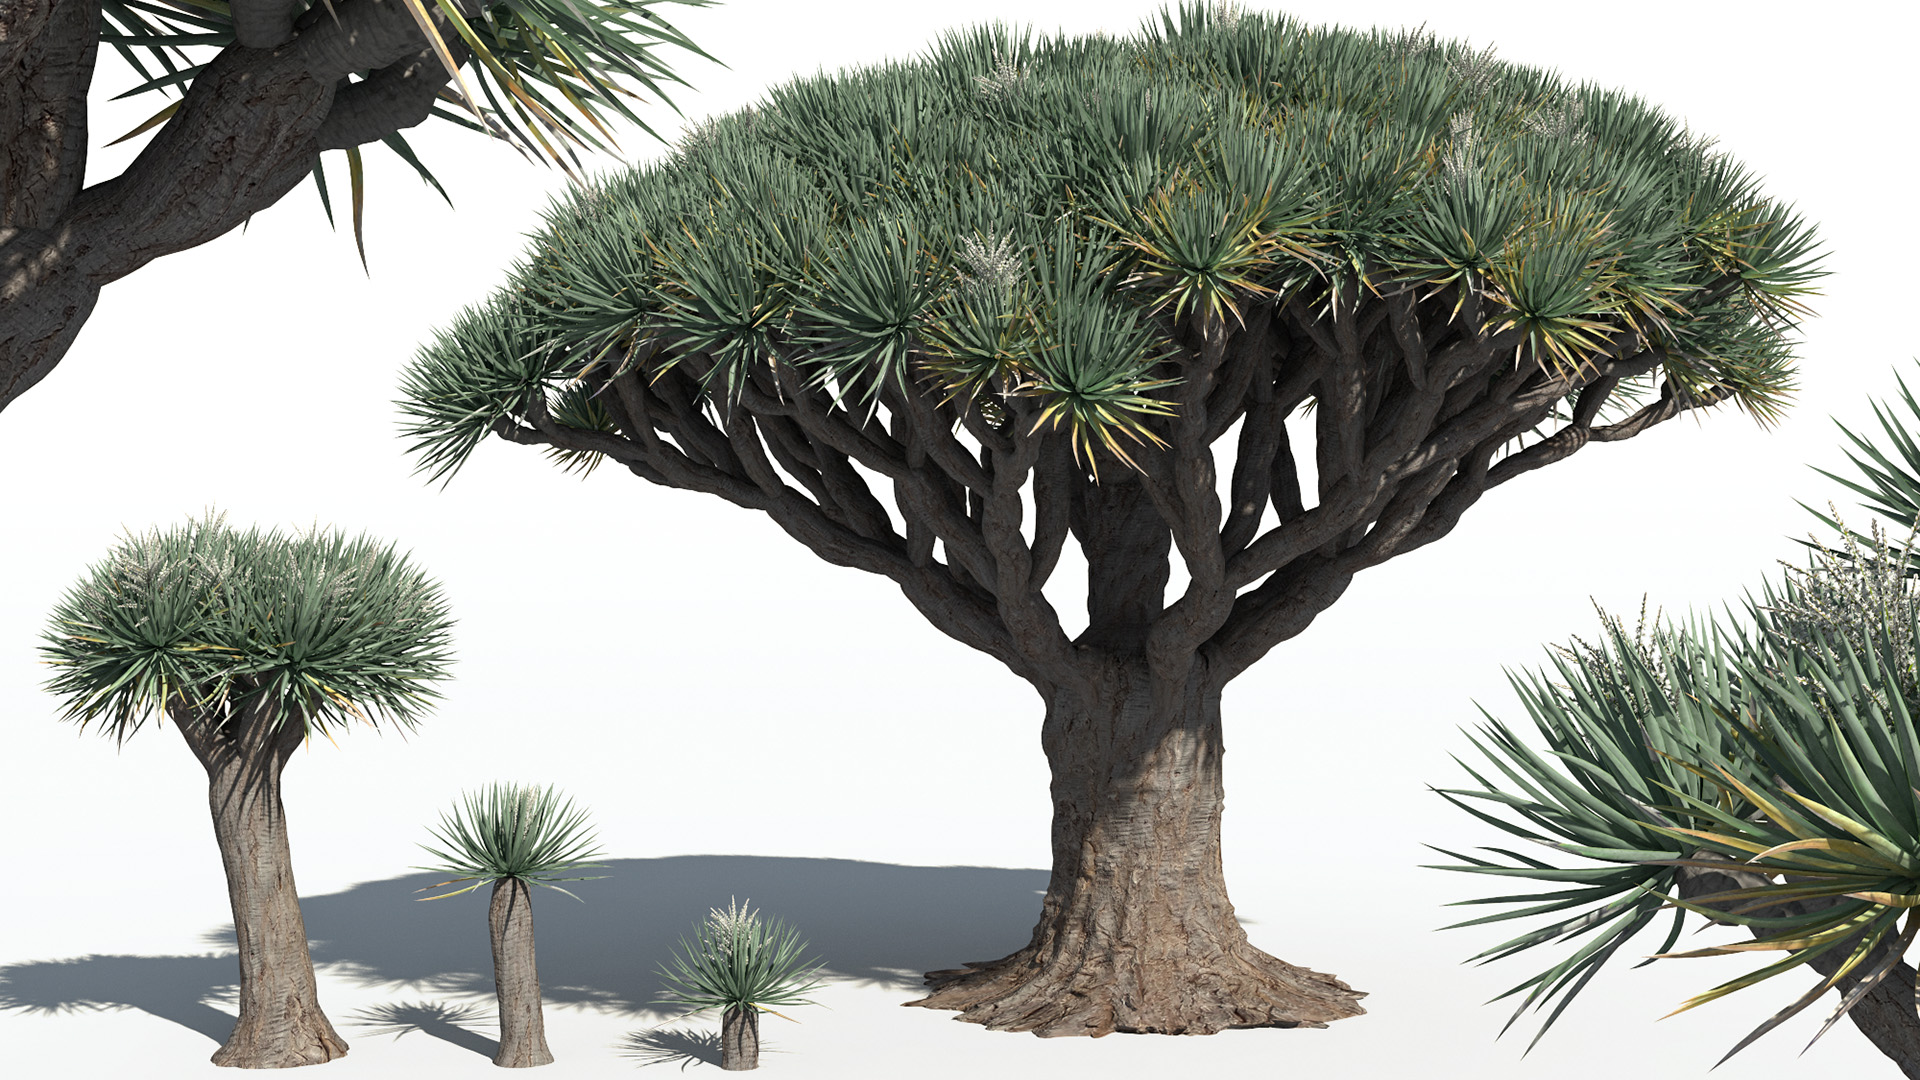 3D model of the Dragon tree Dracaena draco different presets